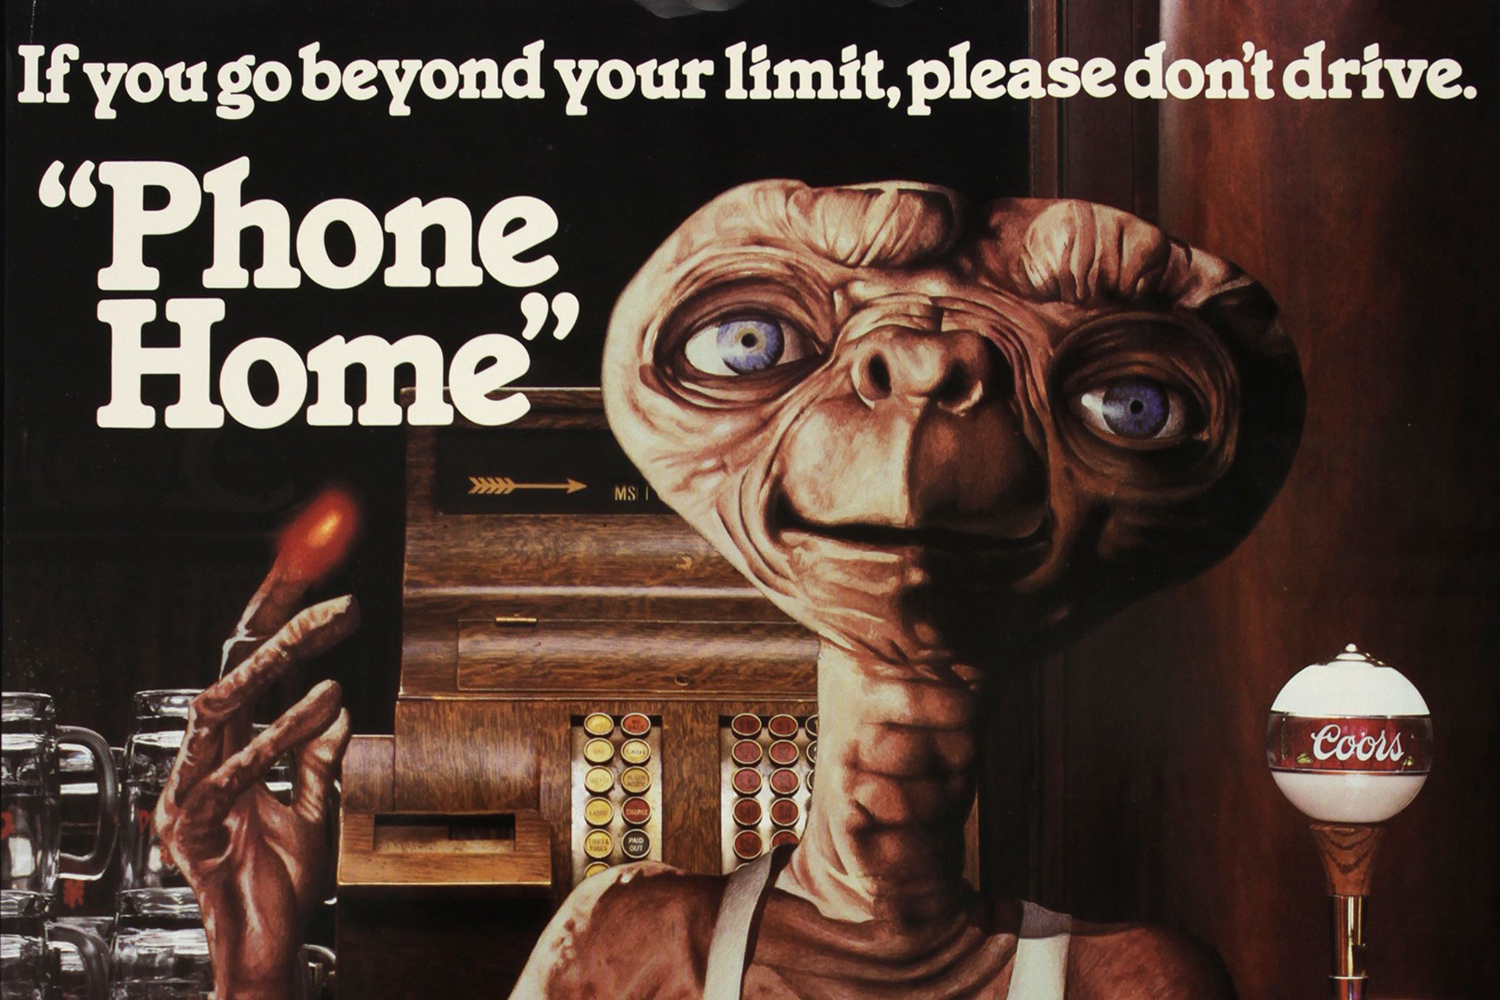 Even after one beer, E.T. is still spitting good advice.